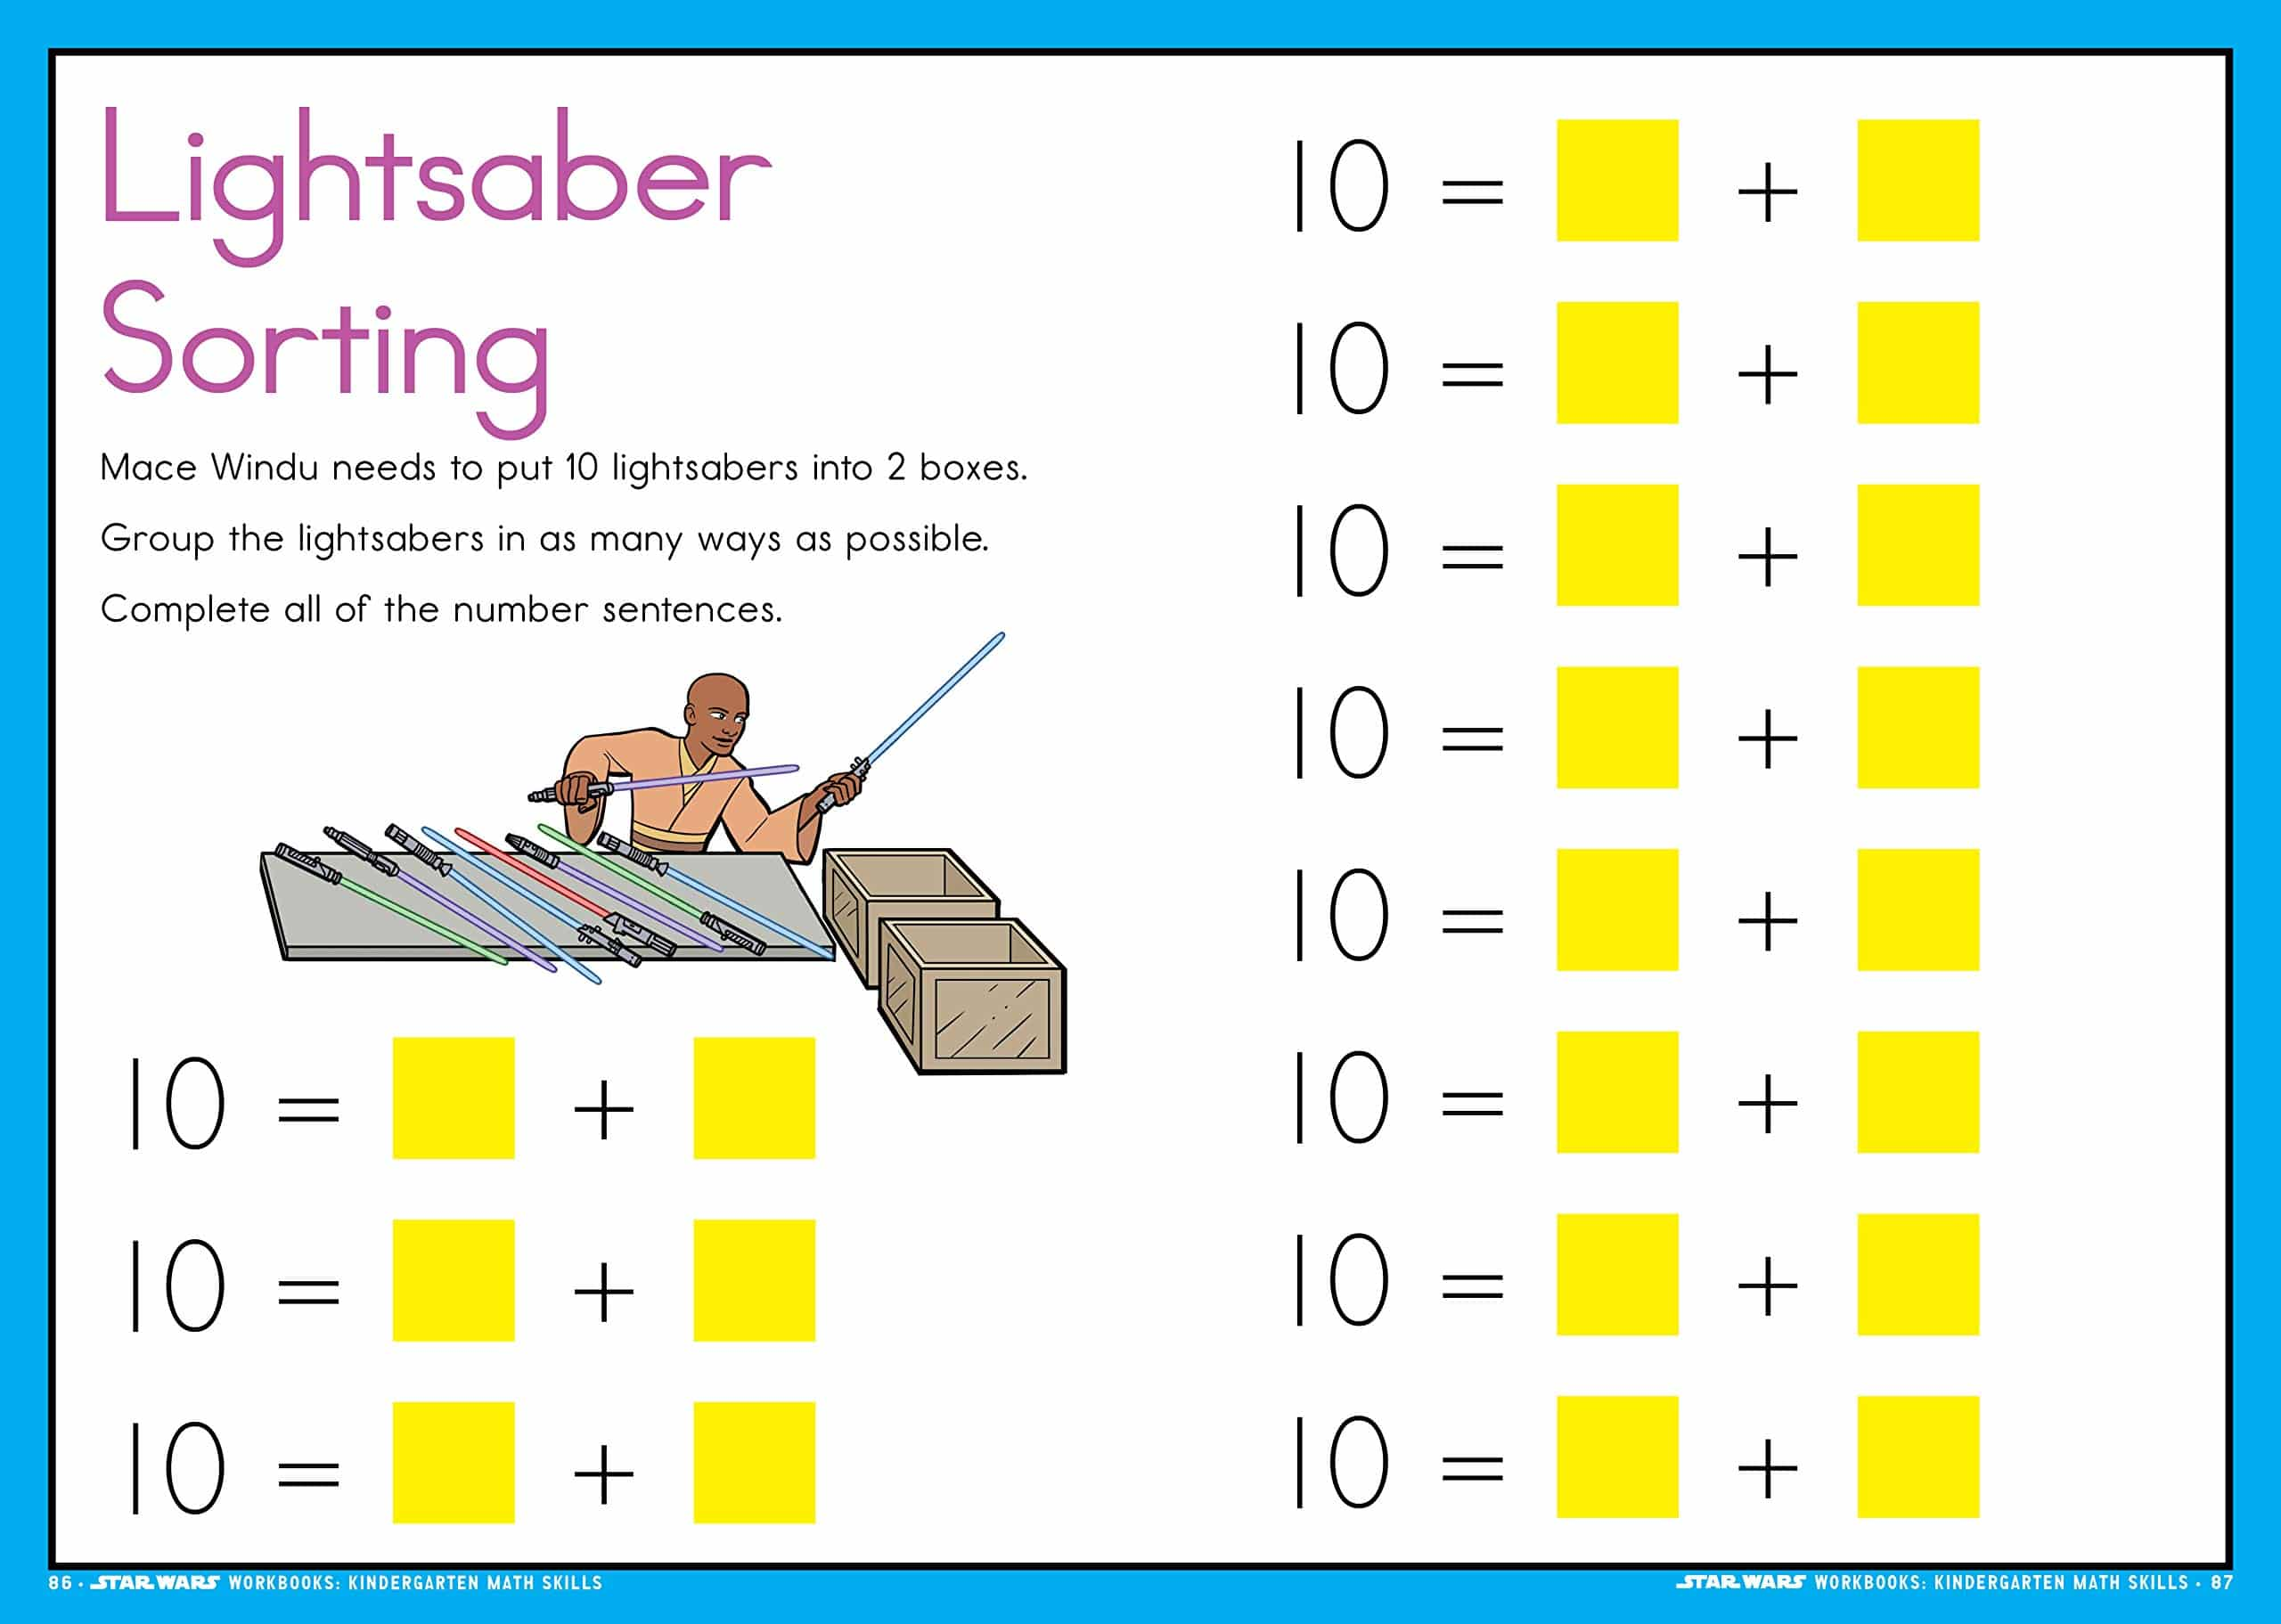 Star Wars Workbook Kindergarten Math Skills